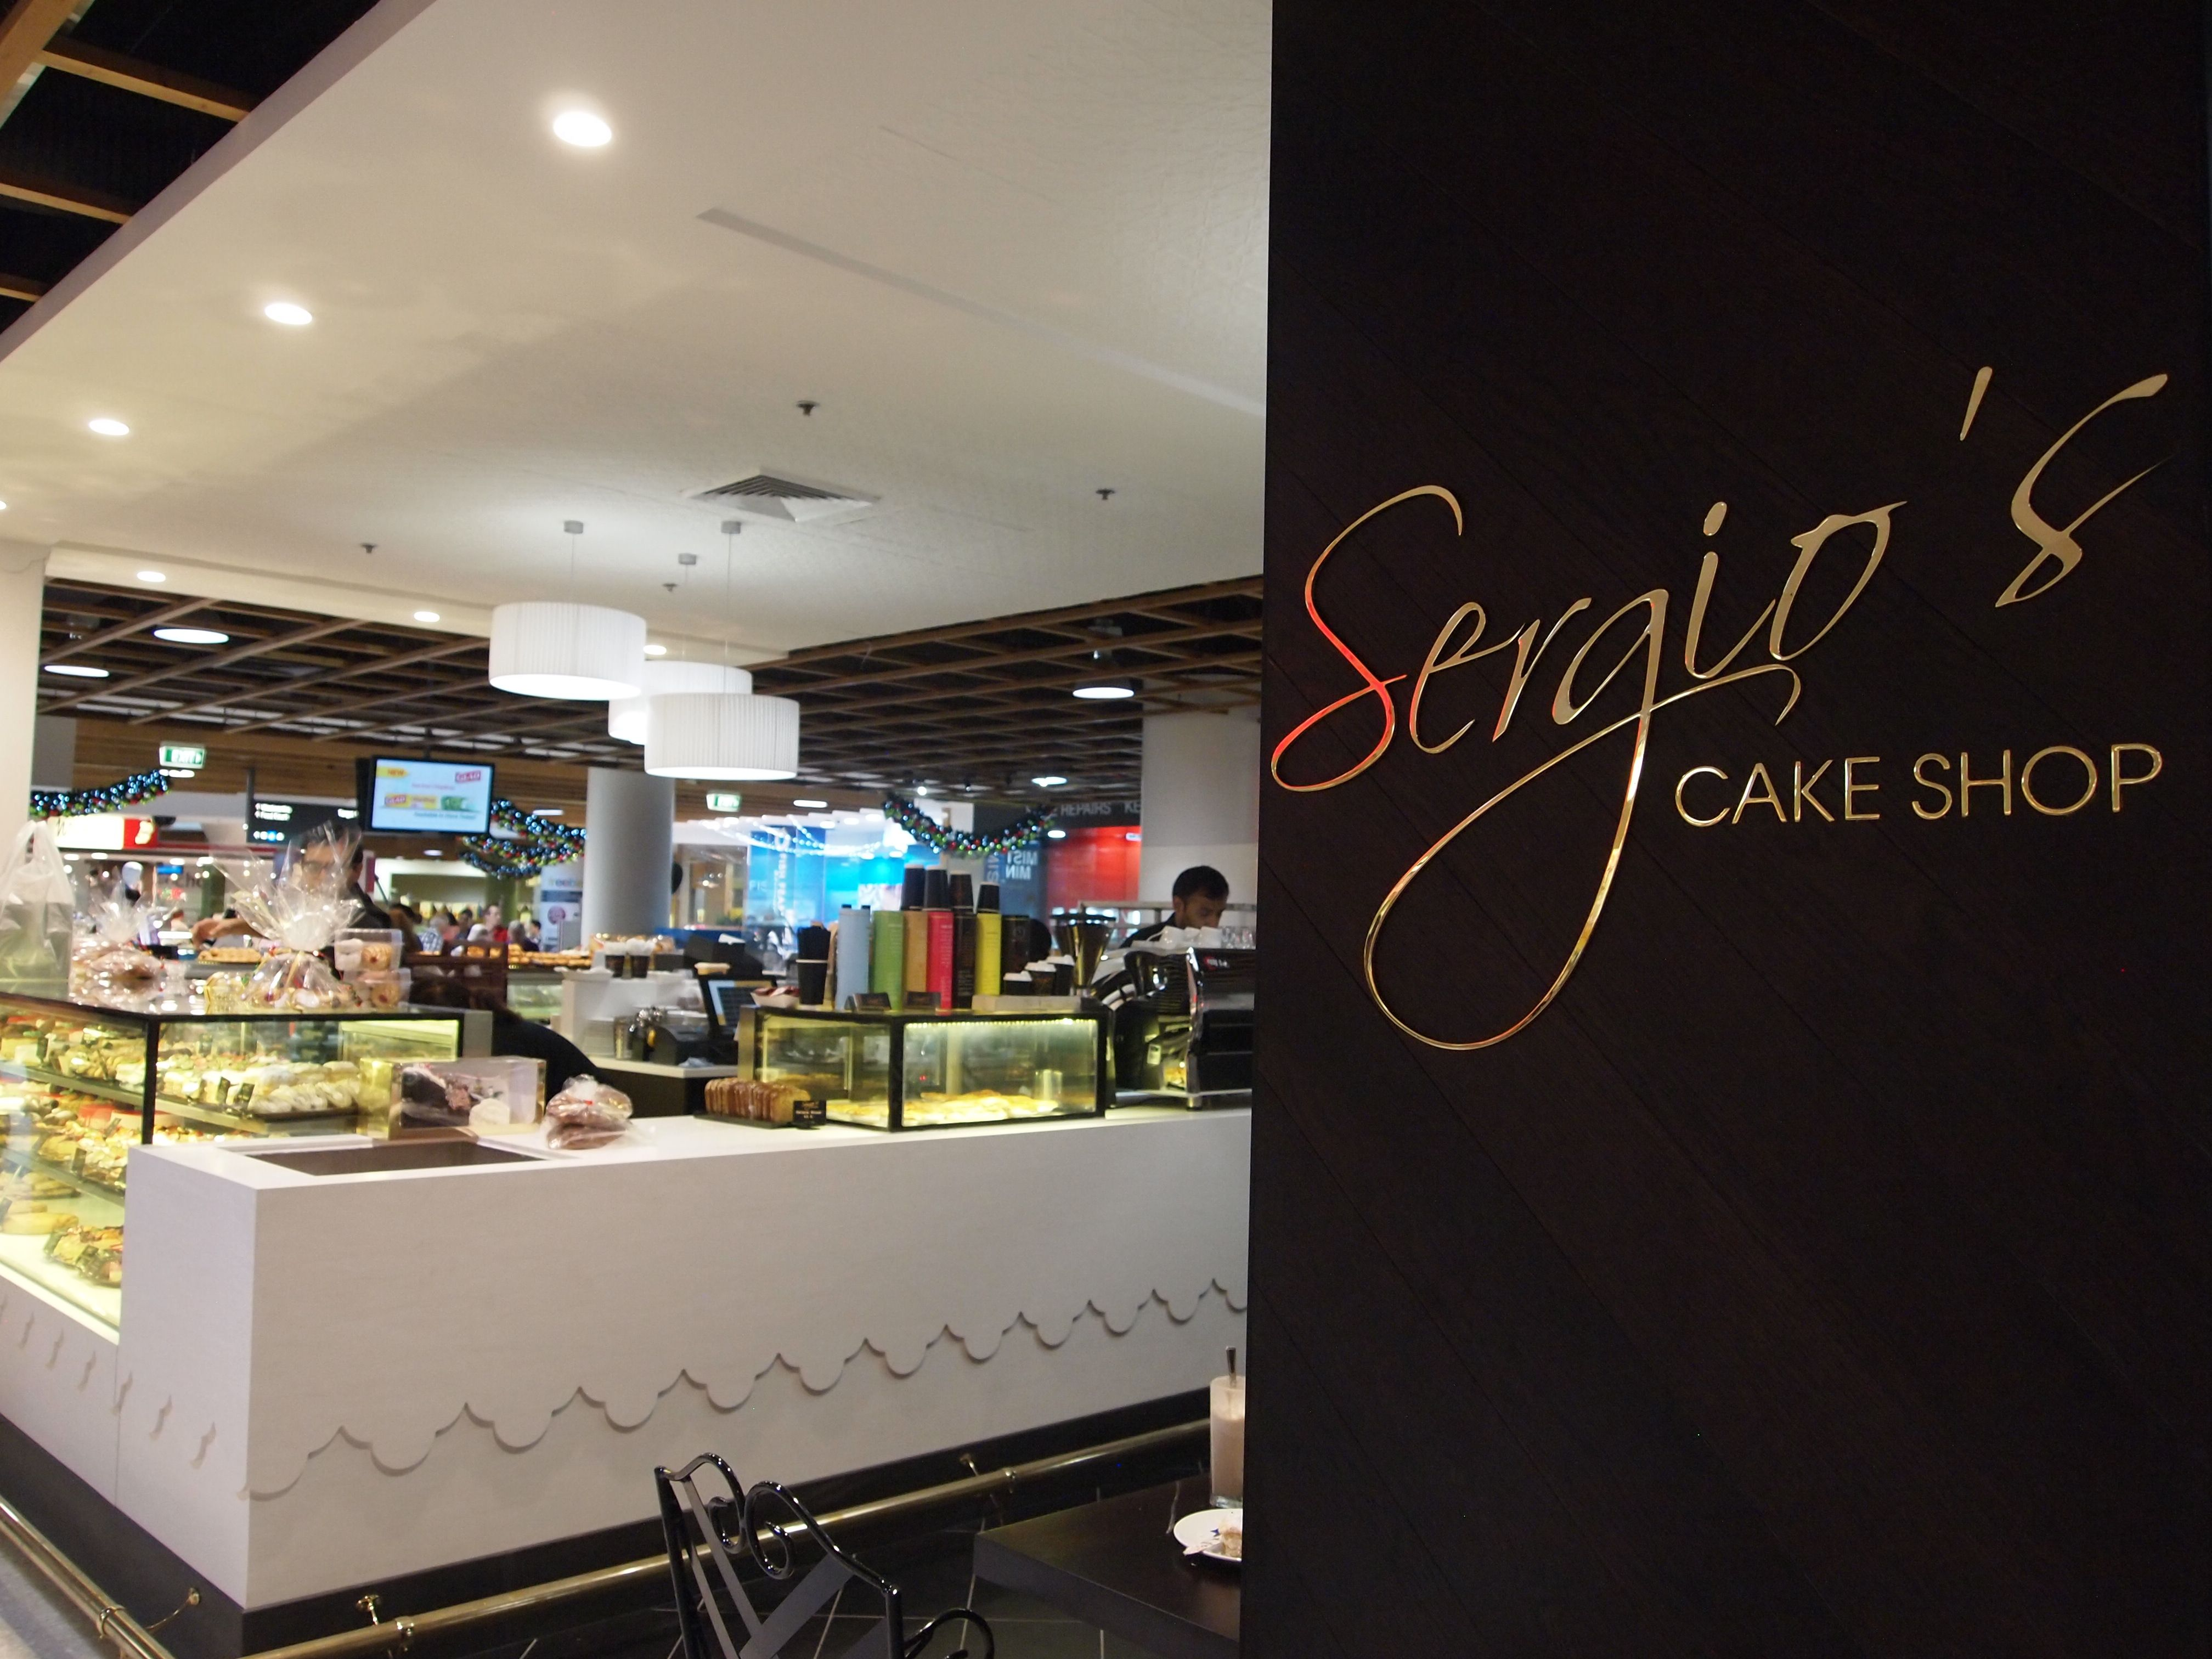 Forward Thinking Design have been responsible for the Sergio's Cake Shop new fitout concept, rebranding and expansion. This is the first kiosk format, located in Carlingford, following on from five inline stores already completed. http://forwardthinkingdesign.com.au/projects/sergios-cake-shop-carlingford/